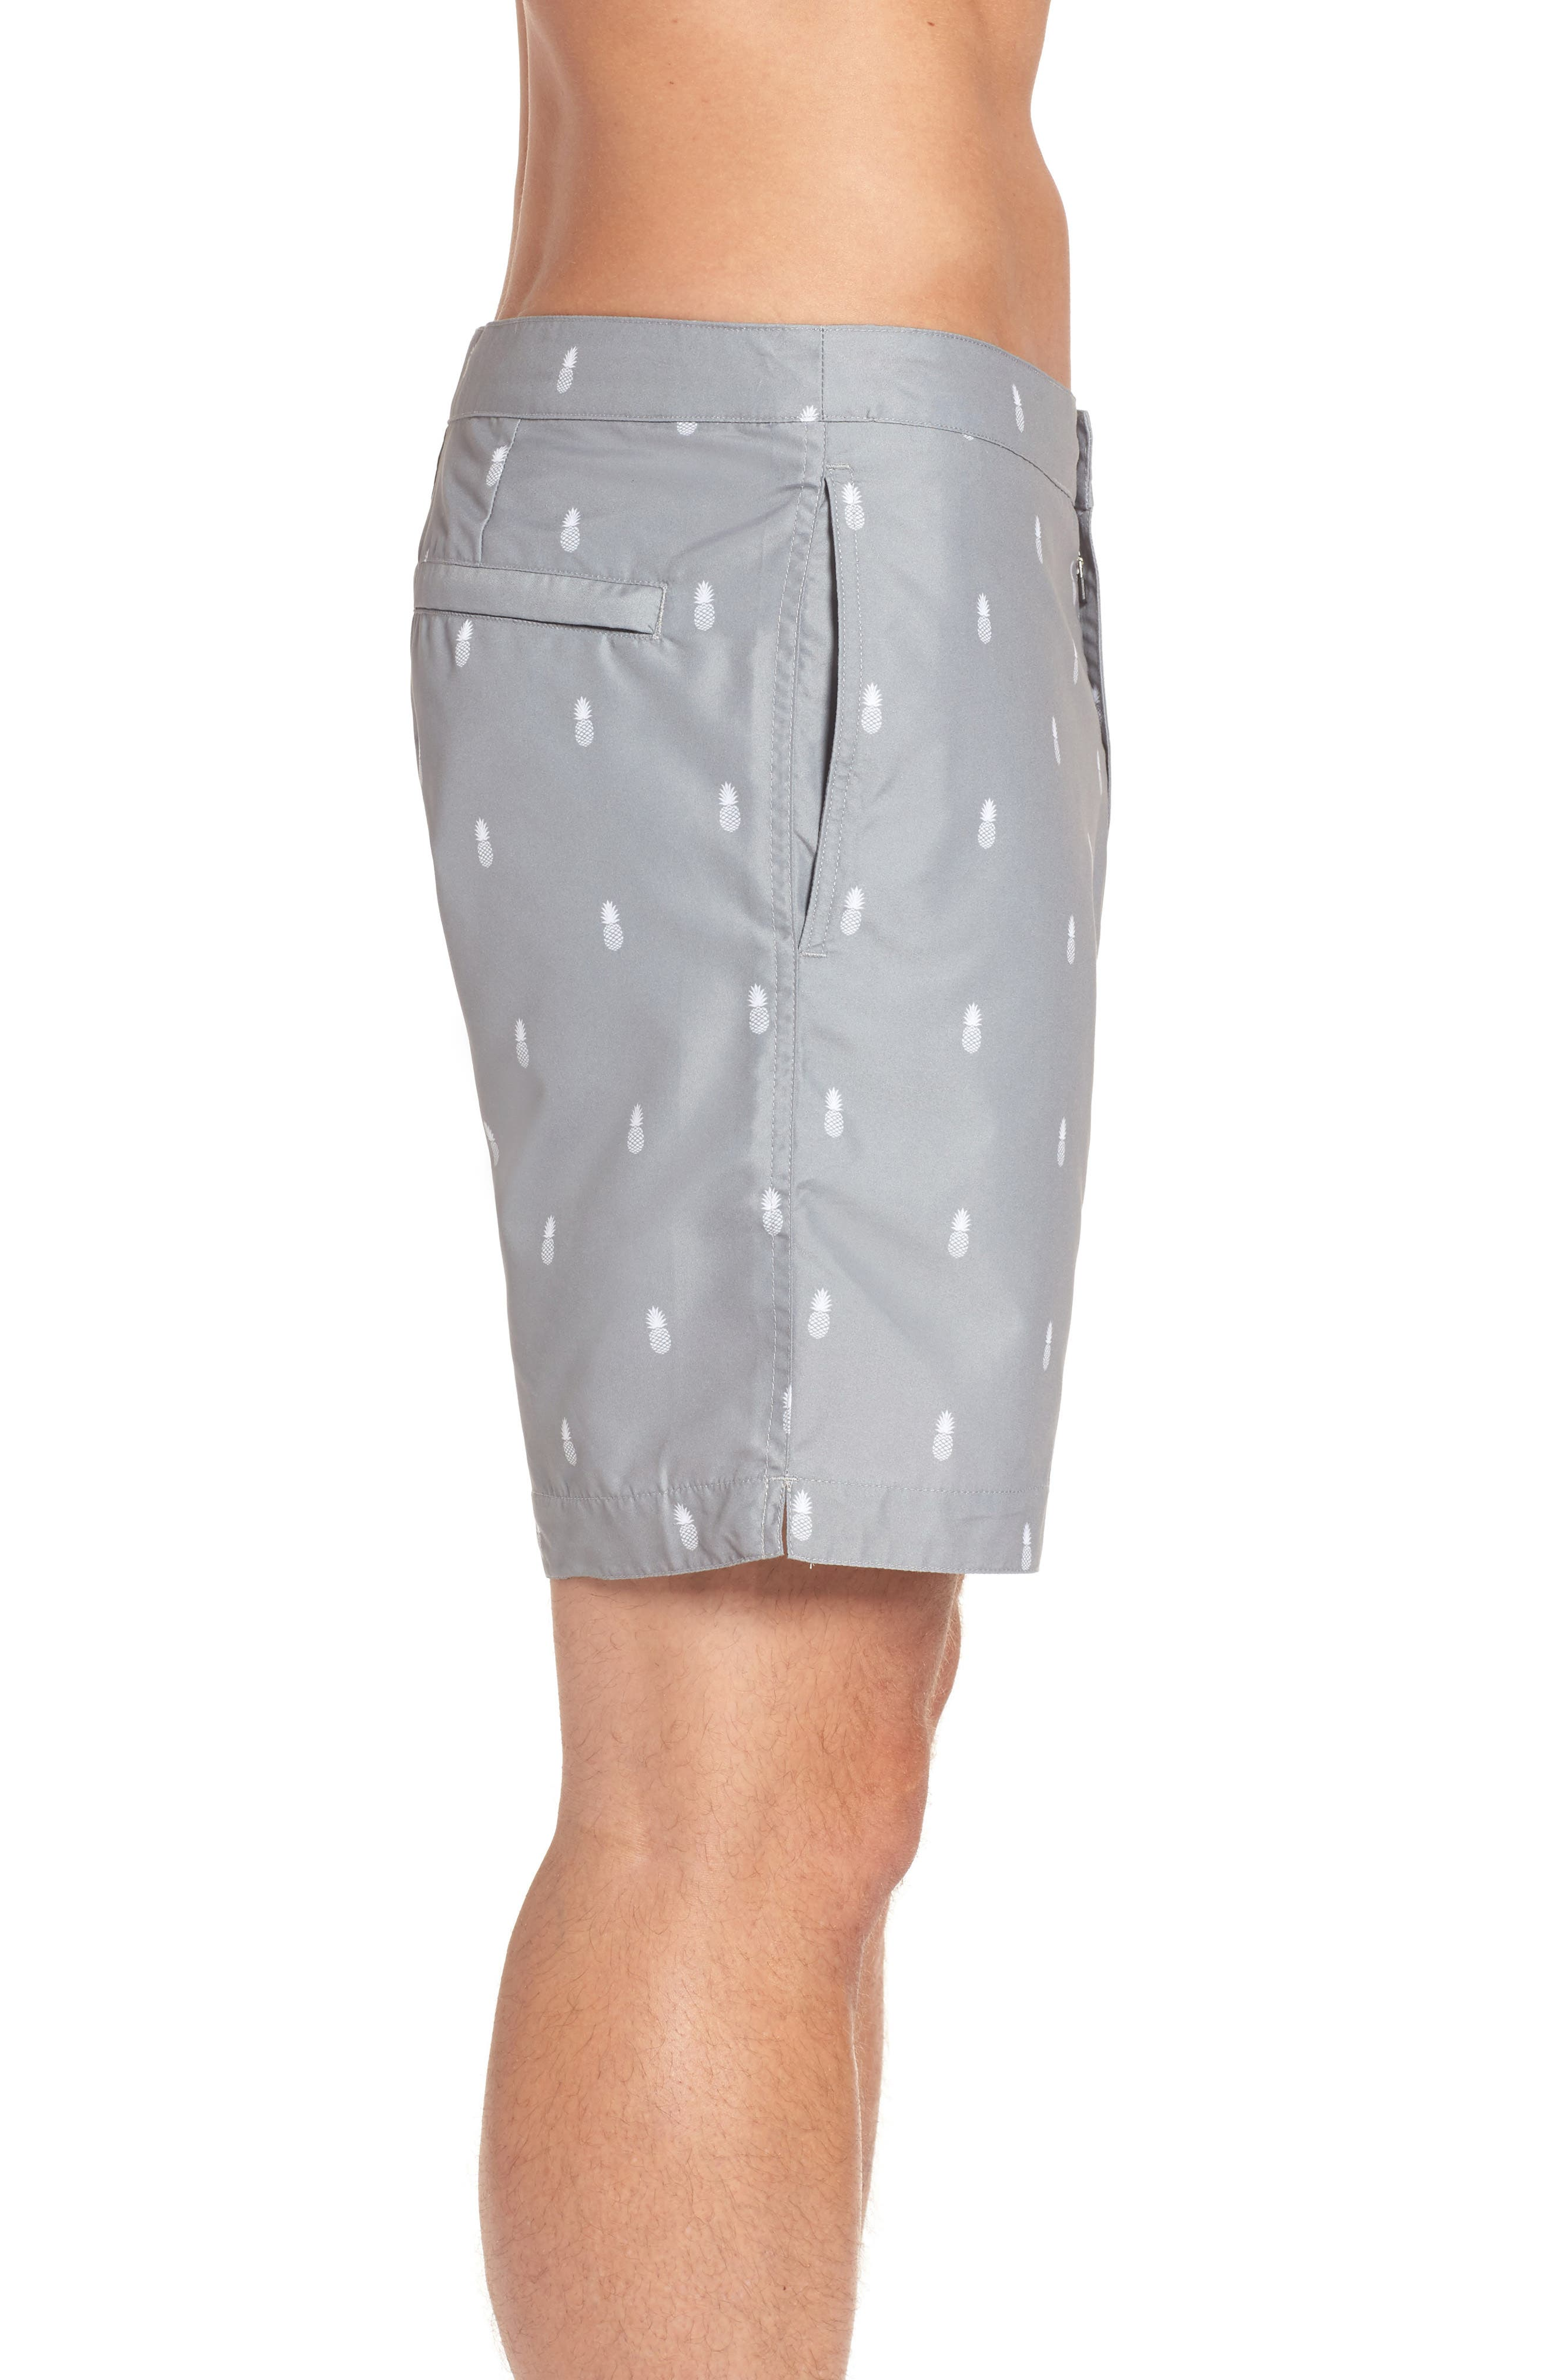 Aruba Tailored Fit Swim Trunks,                             Alternate thumbnail 3, color,                             Grey Pineapple Print